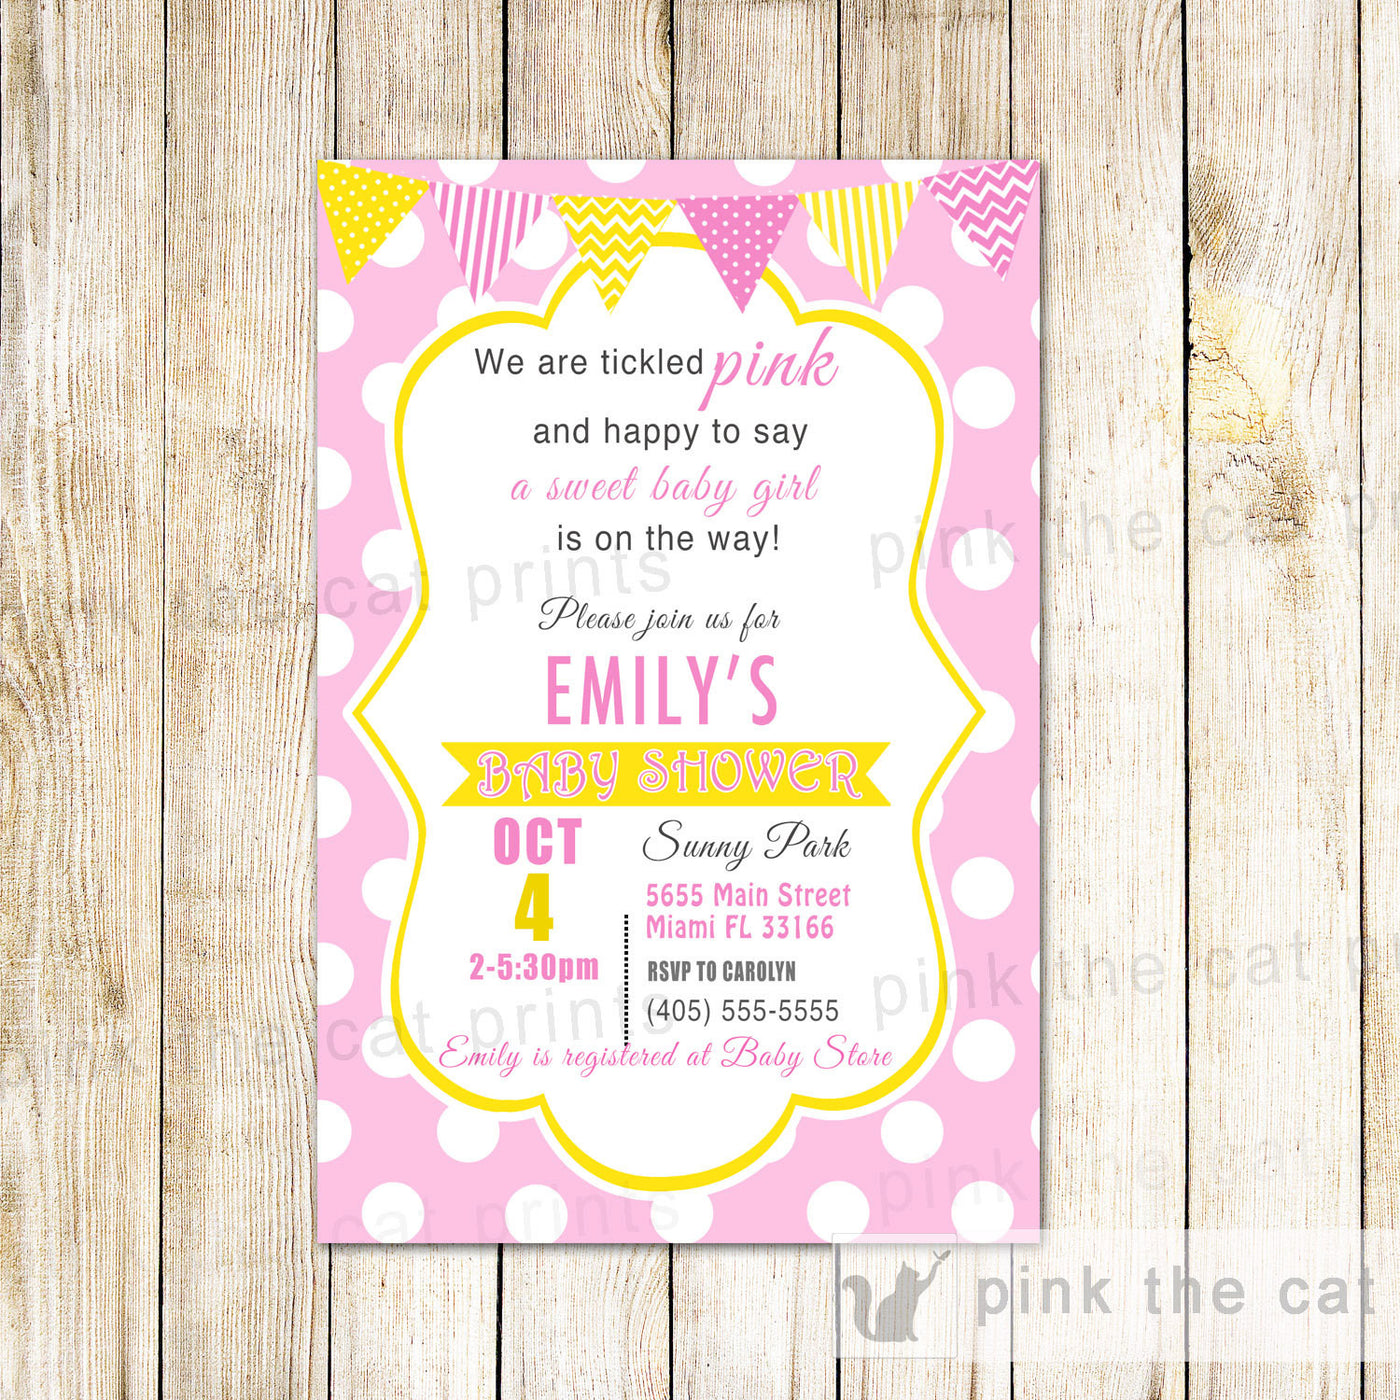 Pink Yellow White Invitation Girl Baby Shower Birthday Pink The Cat